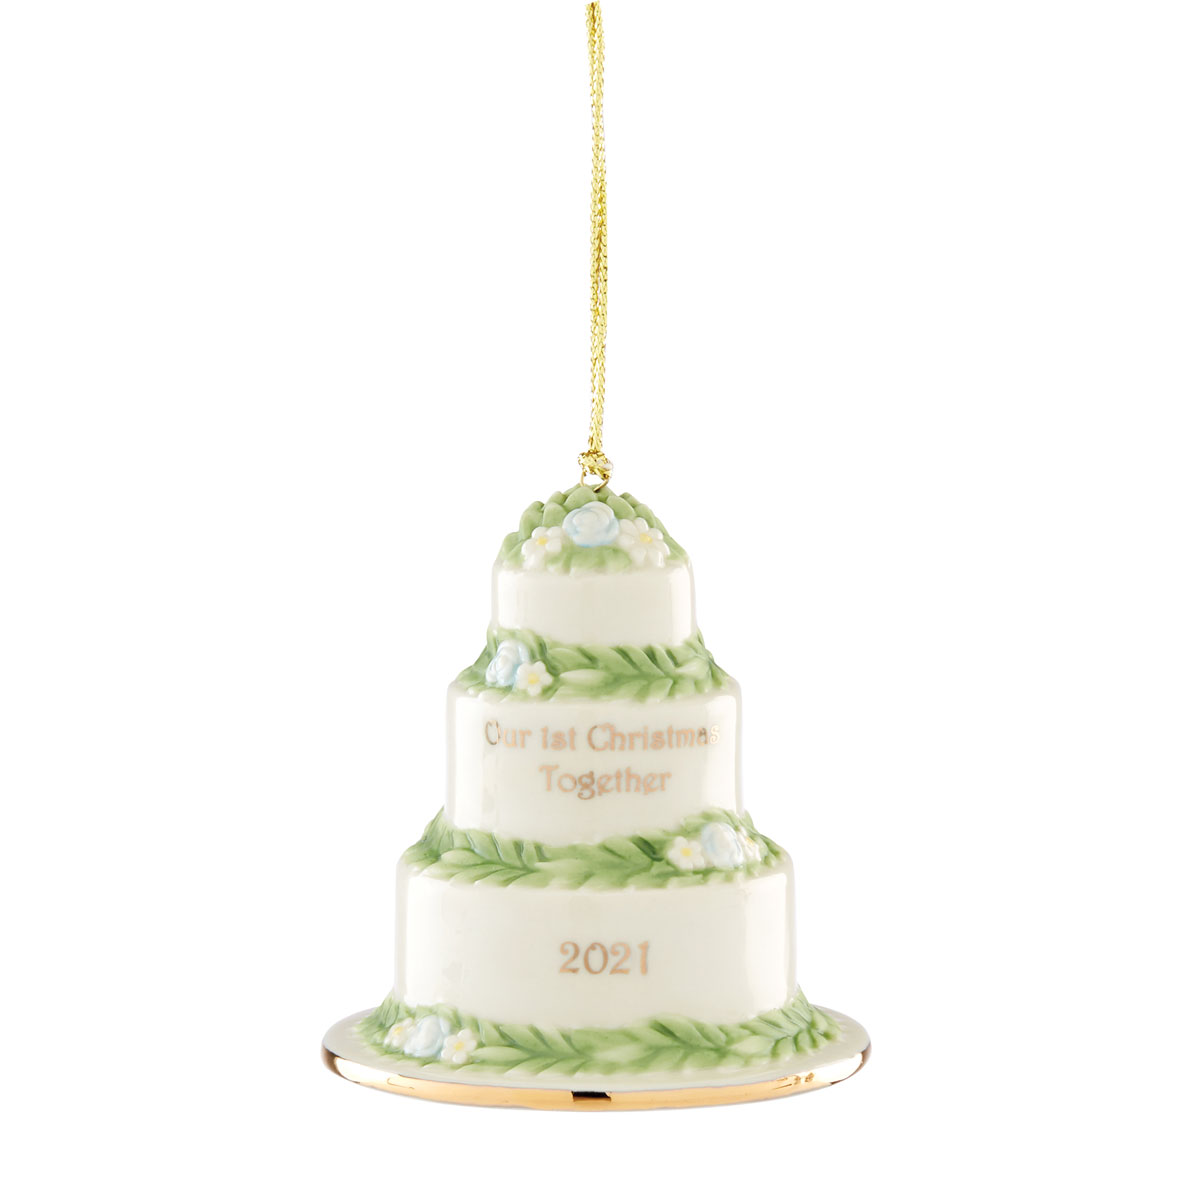 Lenox 2021 Our 1st Christmas Together Cake Ornament